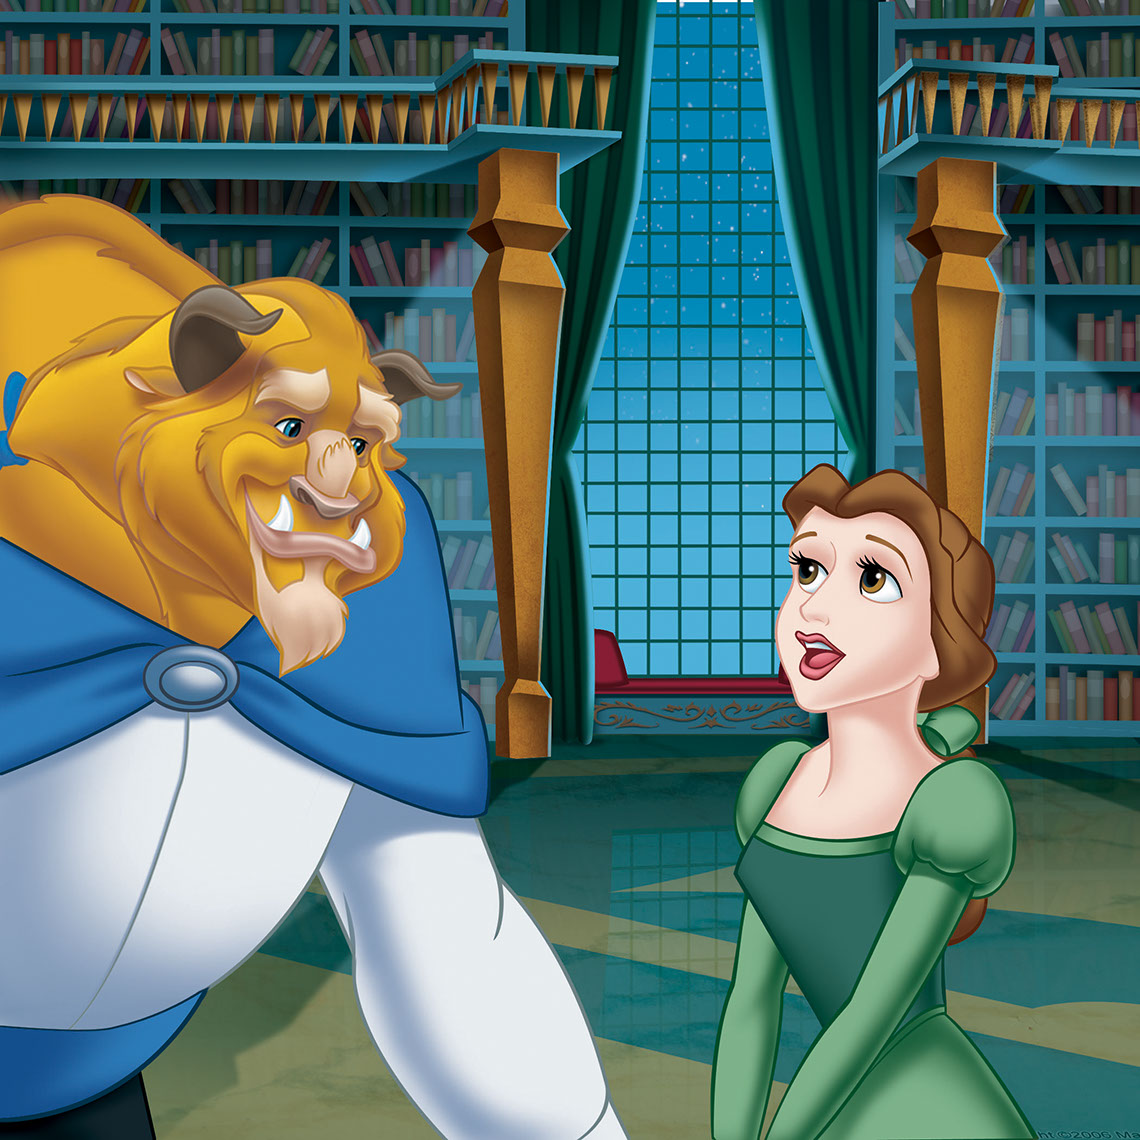 illustration-Cartoons and Characters_Beast and Belle in Library-Shawn McKelvey